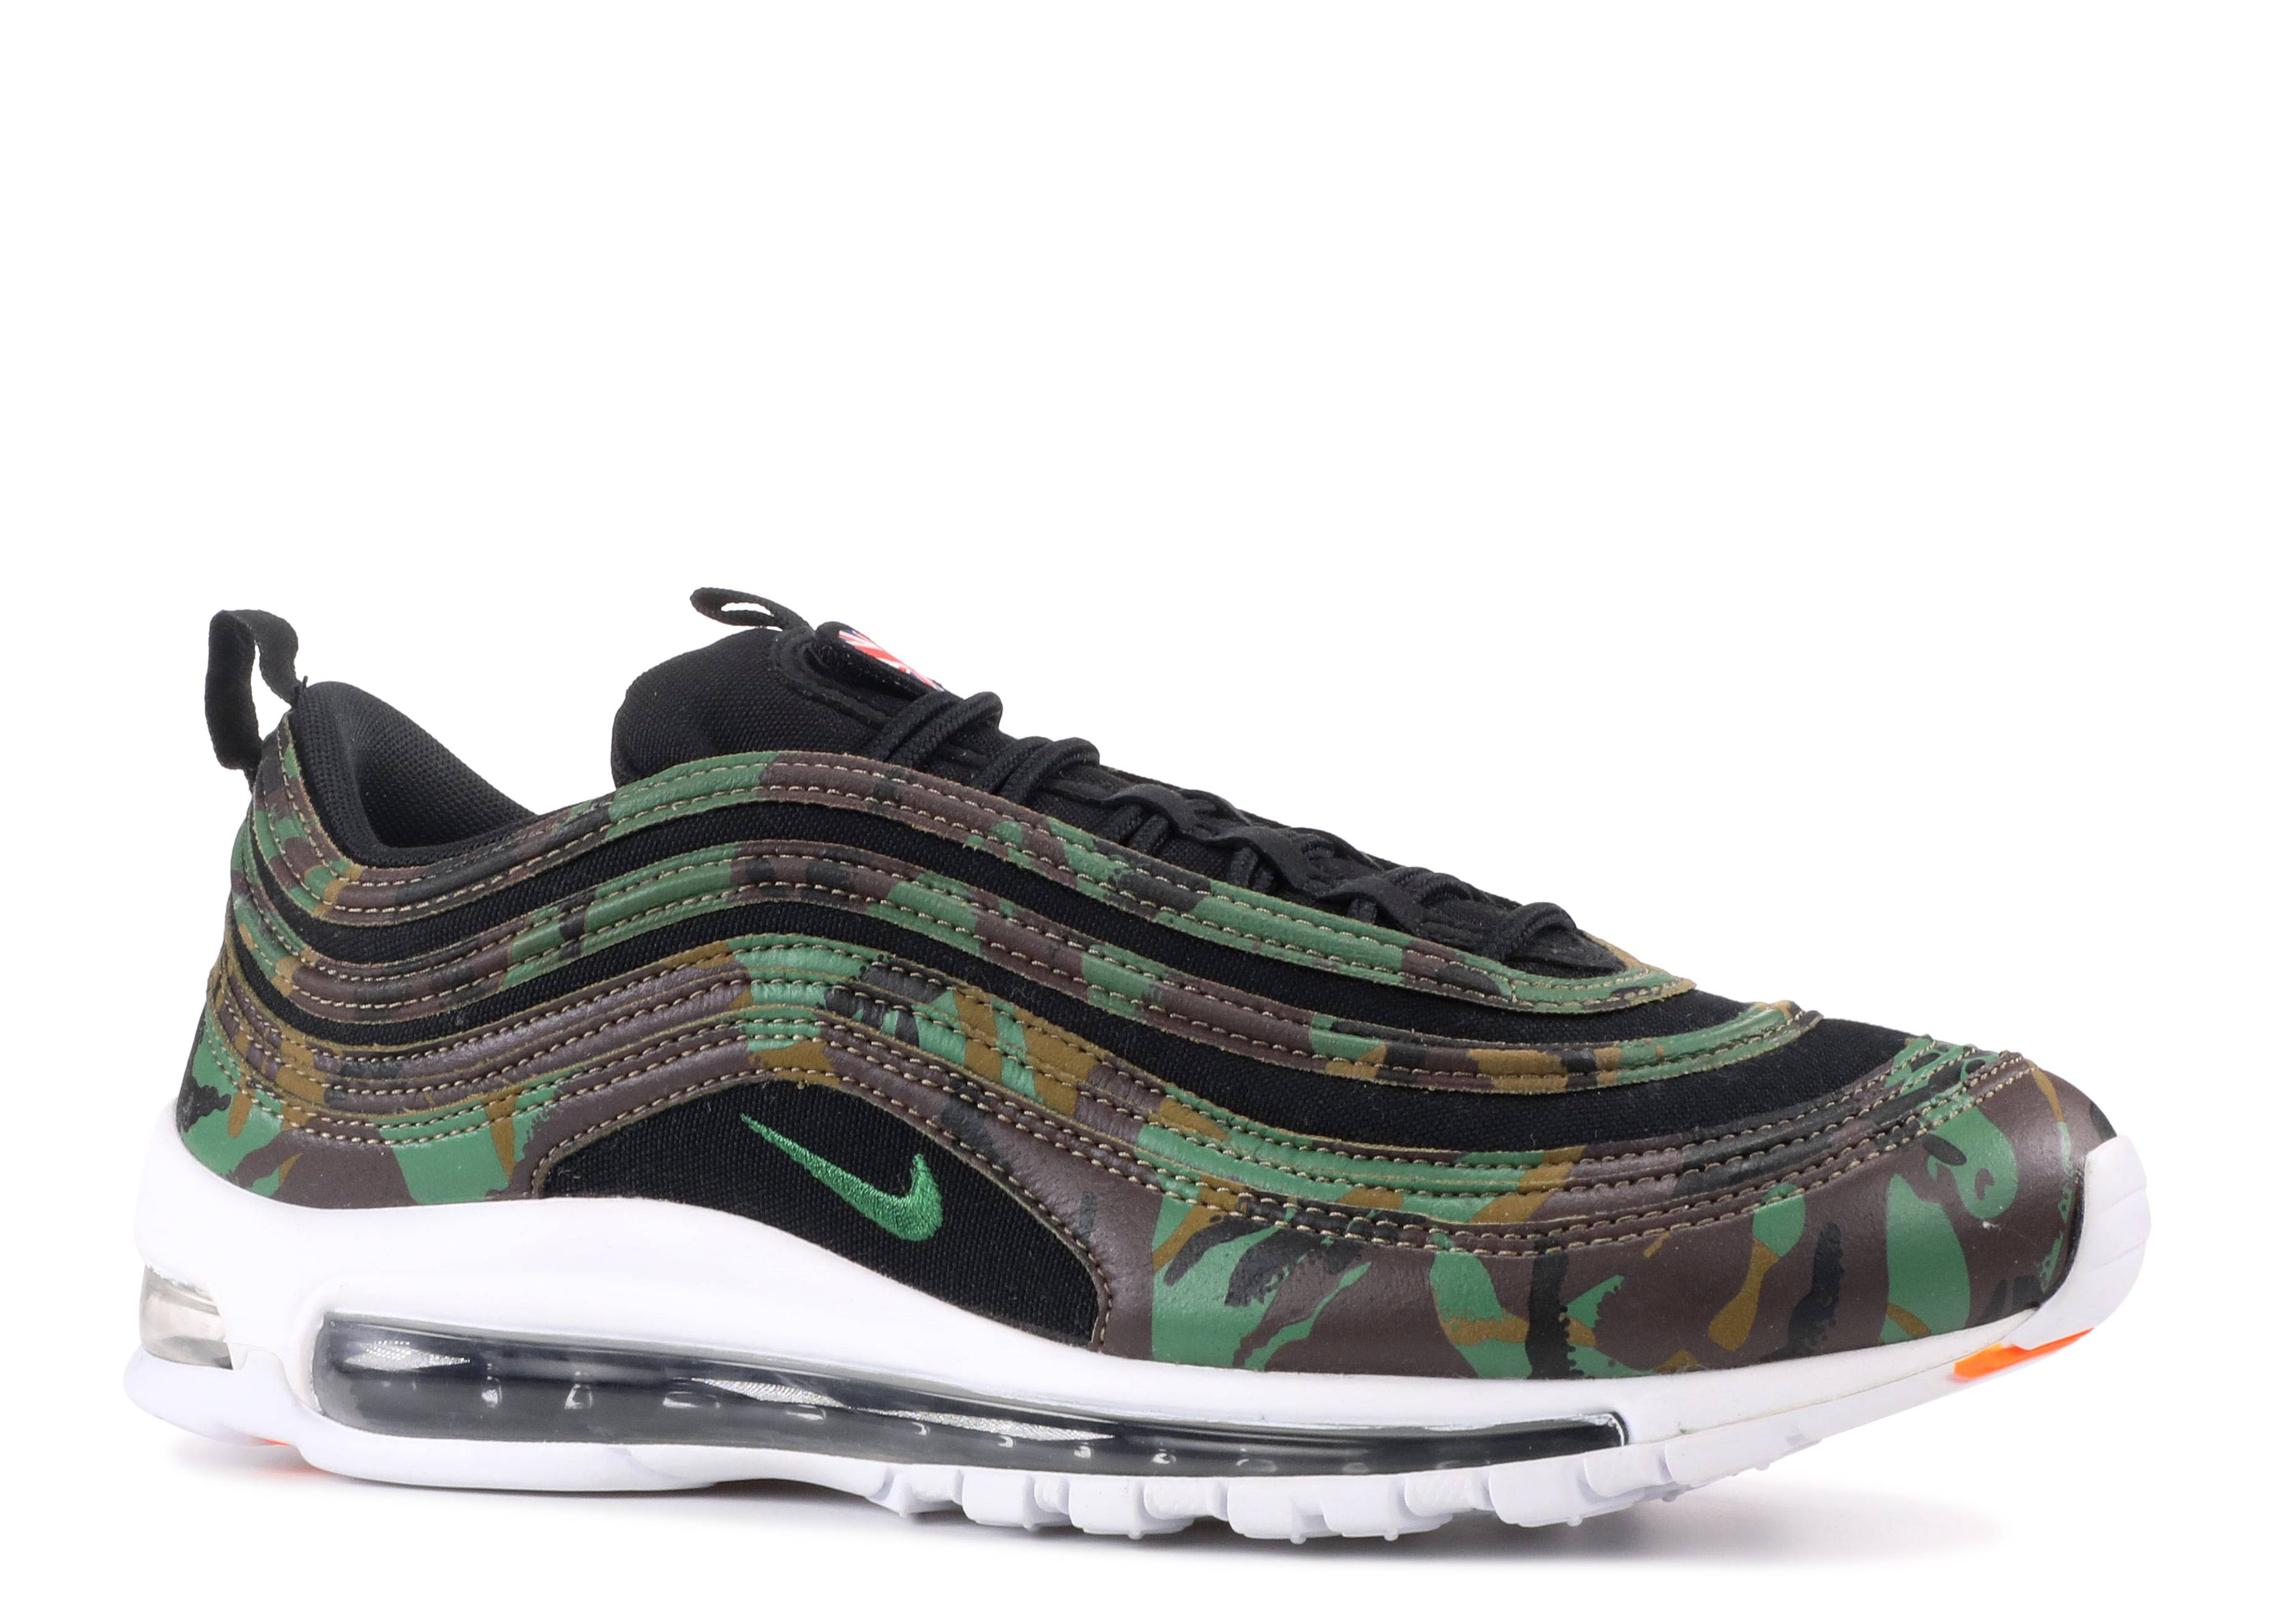 FS] Nike Air Max 97 Country Camo (UK) Size 11 $200